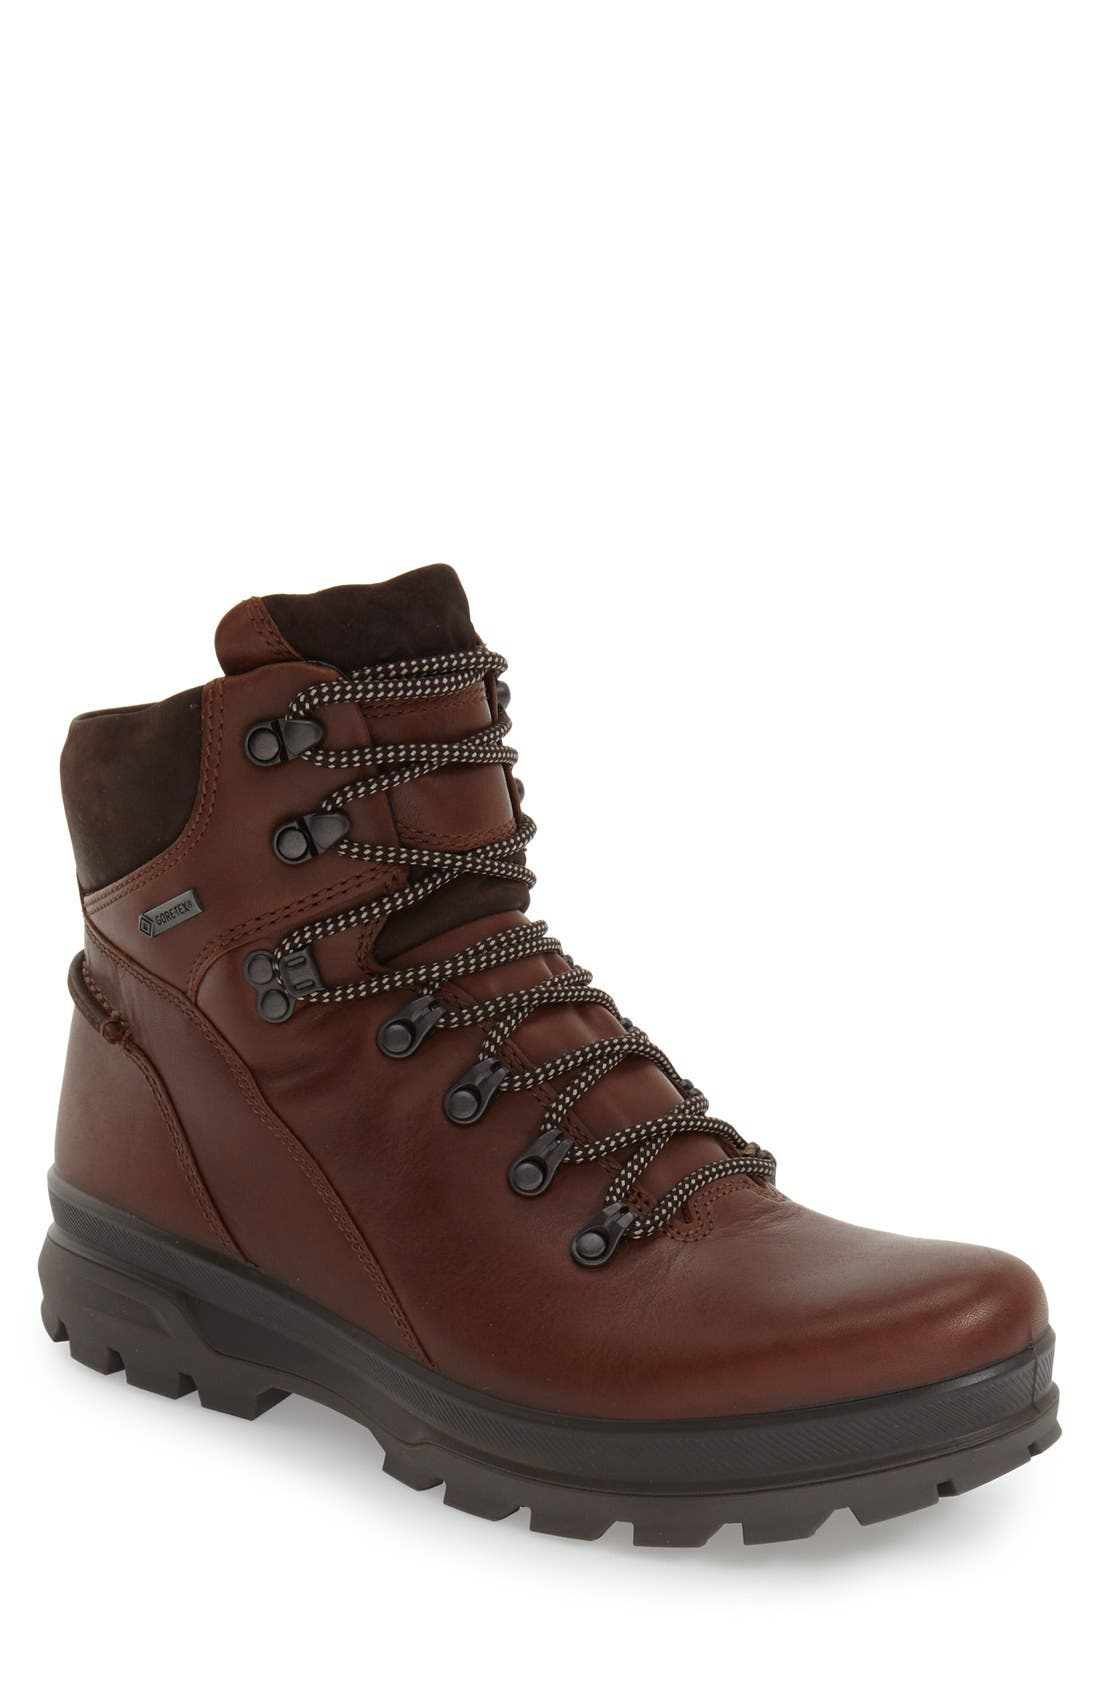 'Rugged Track GTX' Hiking Boot,                         Main,                         color, Bison/ Mocha Leather